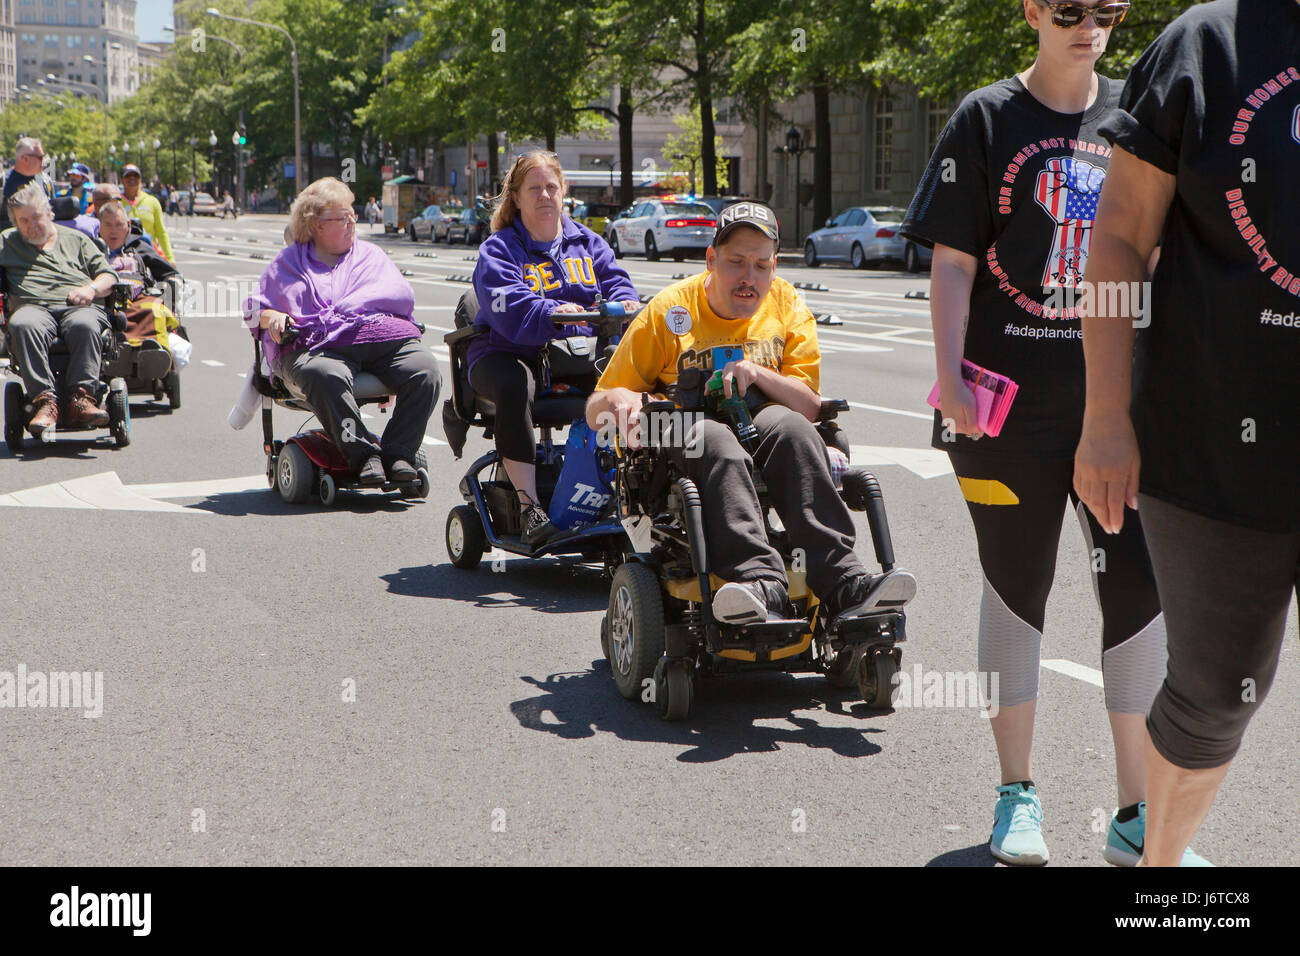 May 15, 2017, Washington, DC USA:  Members of ADAPT and disability activists, many in wheelchairs, protest and demand - Stock Image